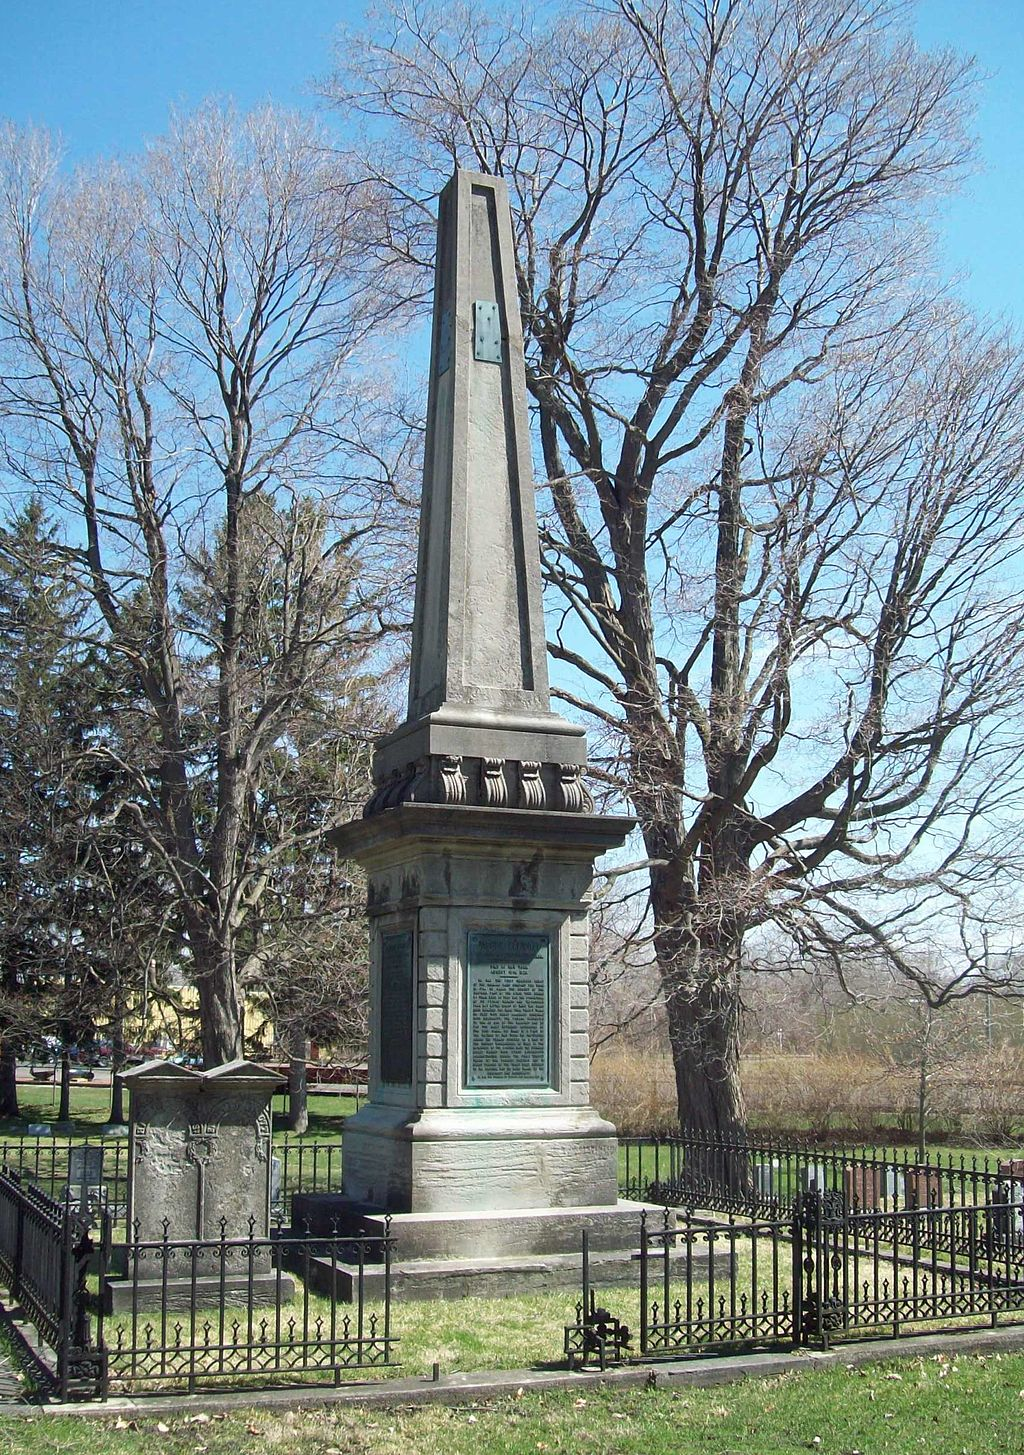 The Joseph Ellicott obelisk